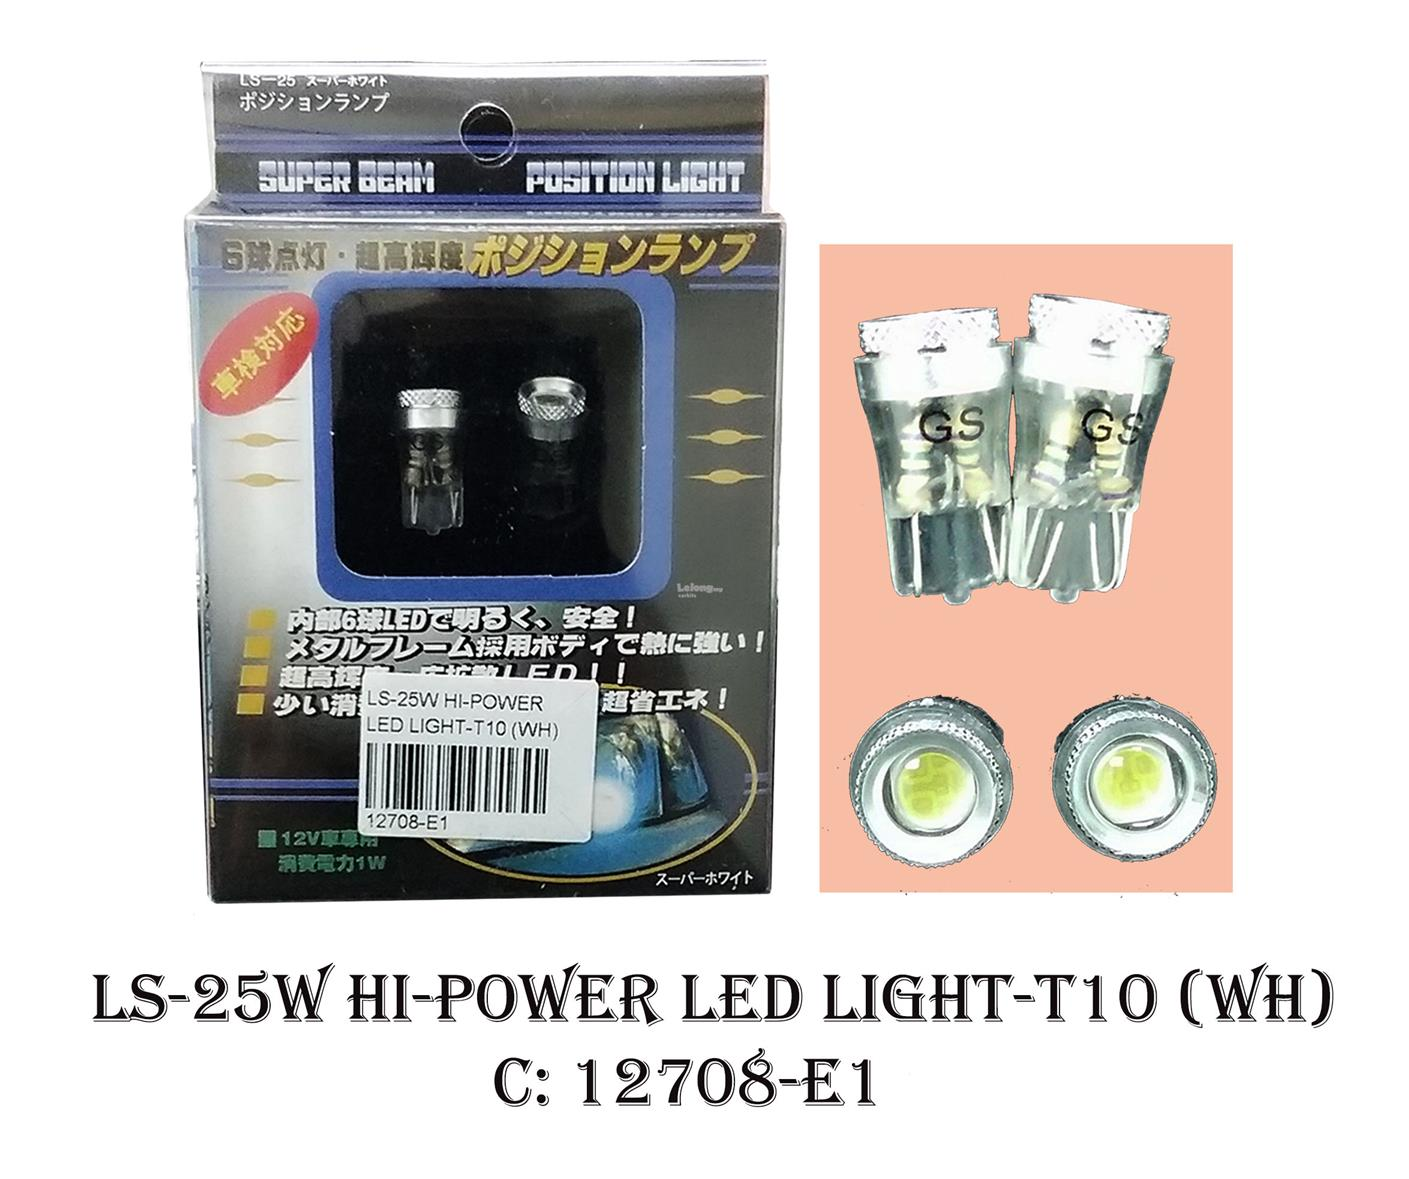 Hi-Power LED Light-T10 (white) M: LS-25W